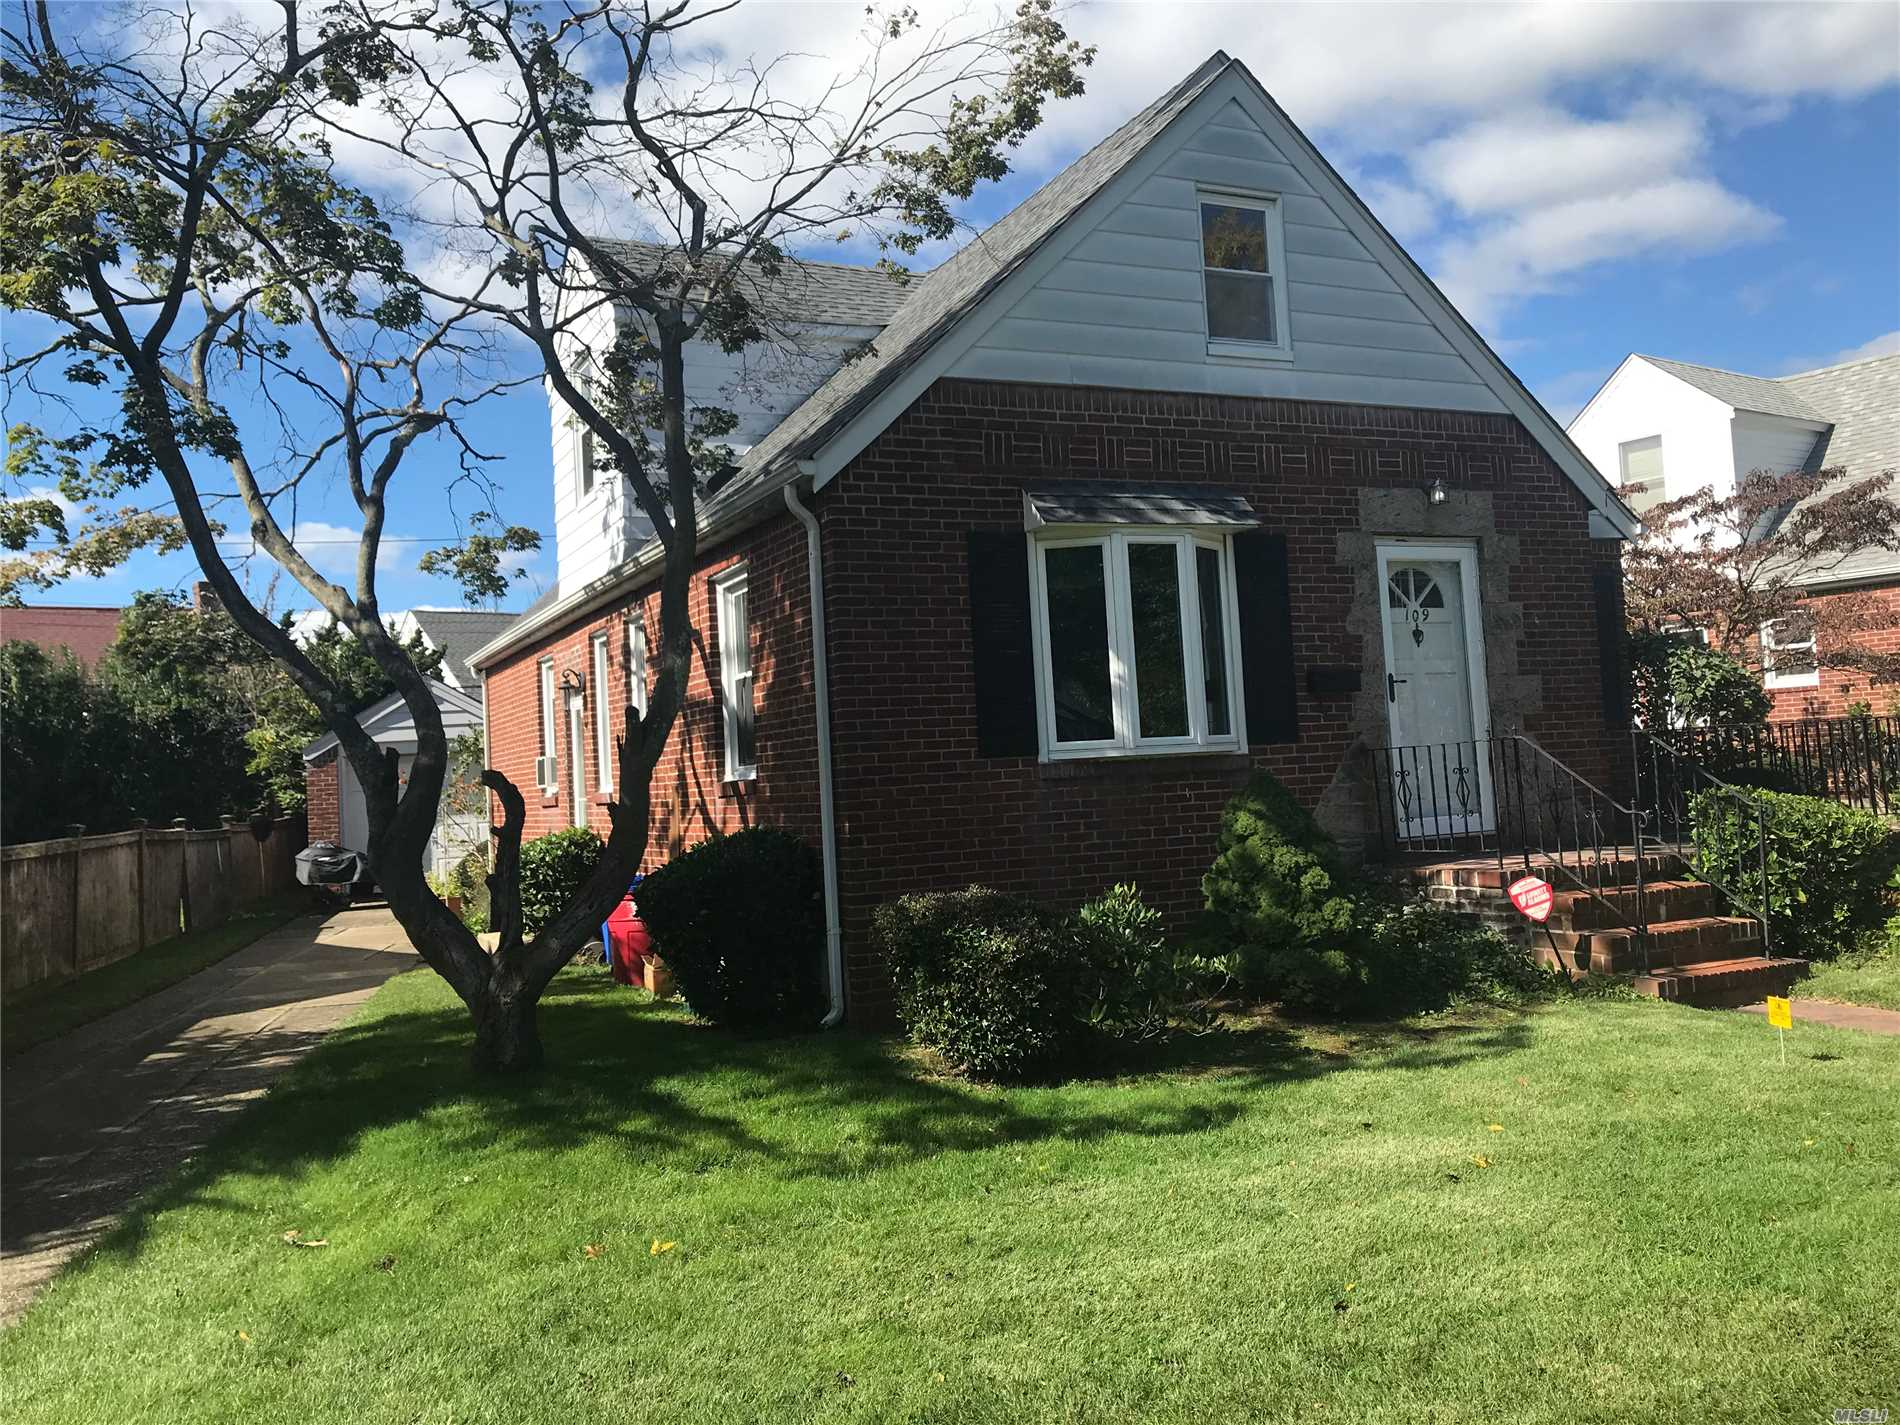 Solid Brick Home In Quiet Neighborhood; North Of Hillside Ave. Convenient To All; Update This Charmer To Make It Your Own.